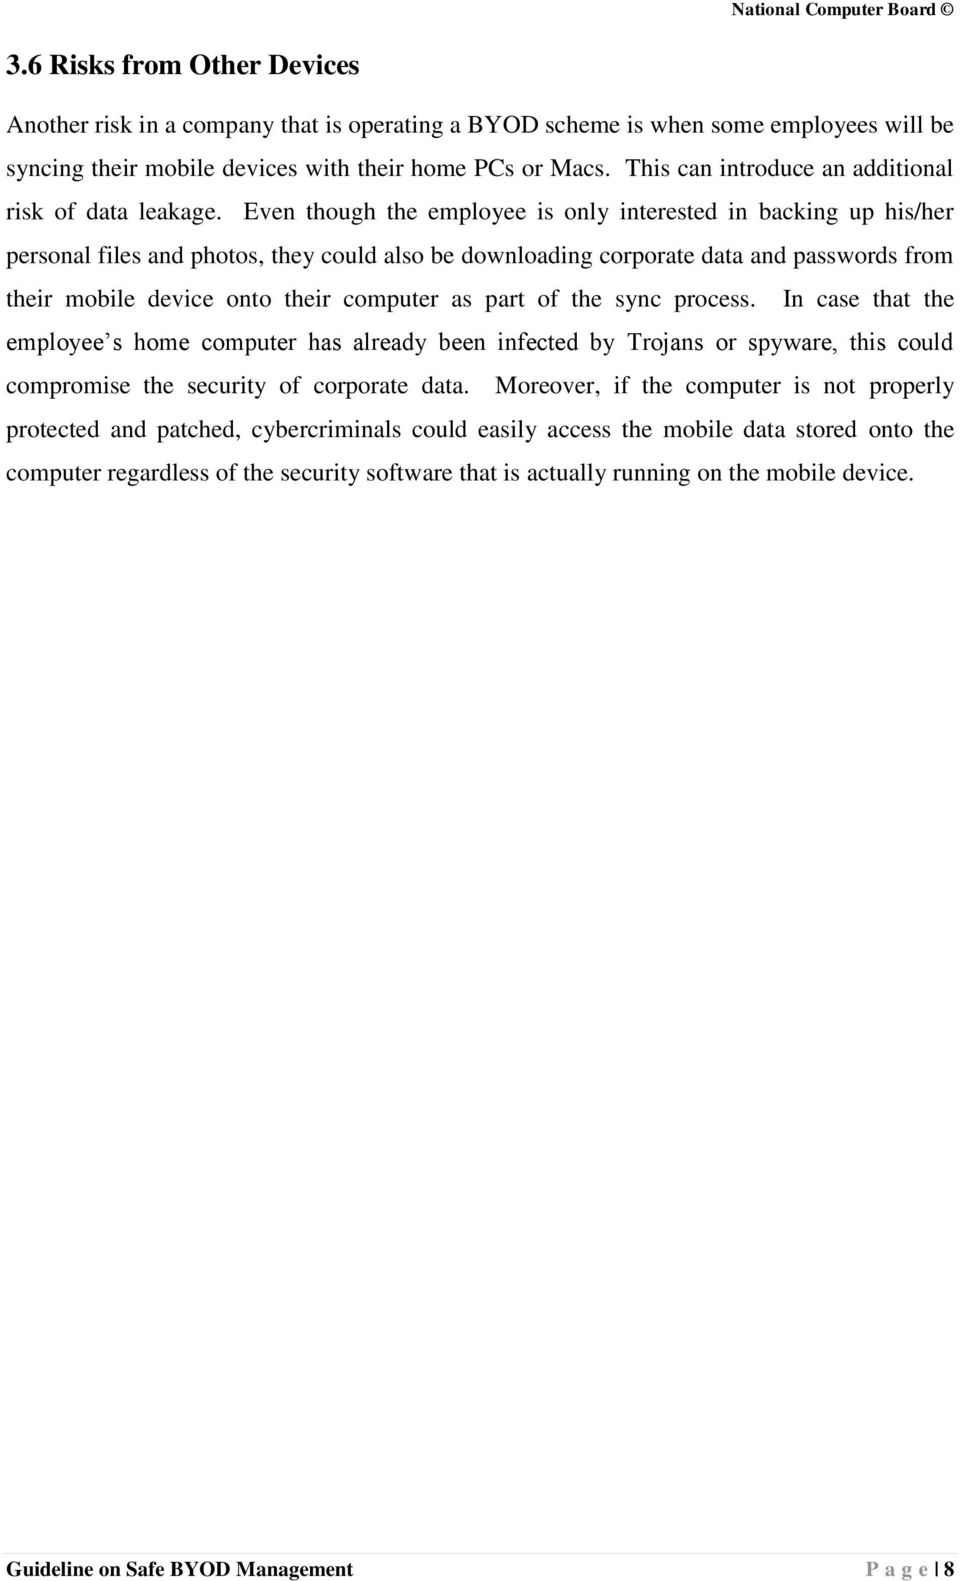 Even though the employee is only interested in backing up his/her personal files and photos, they could also be downloading corporate data and passwords from their mobile device onto their computer